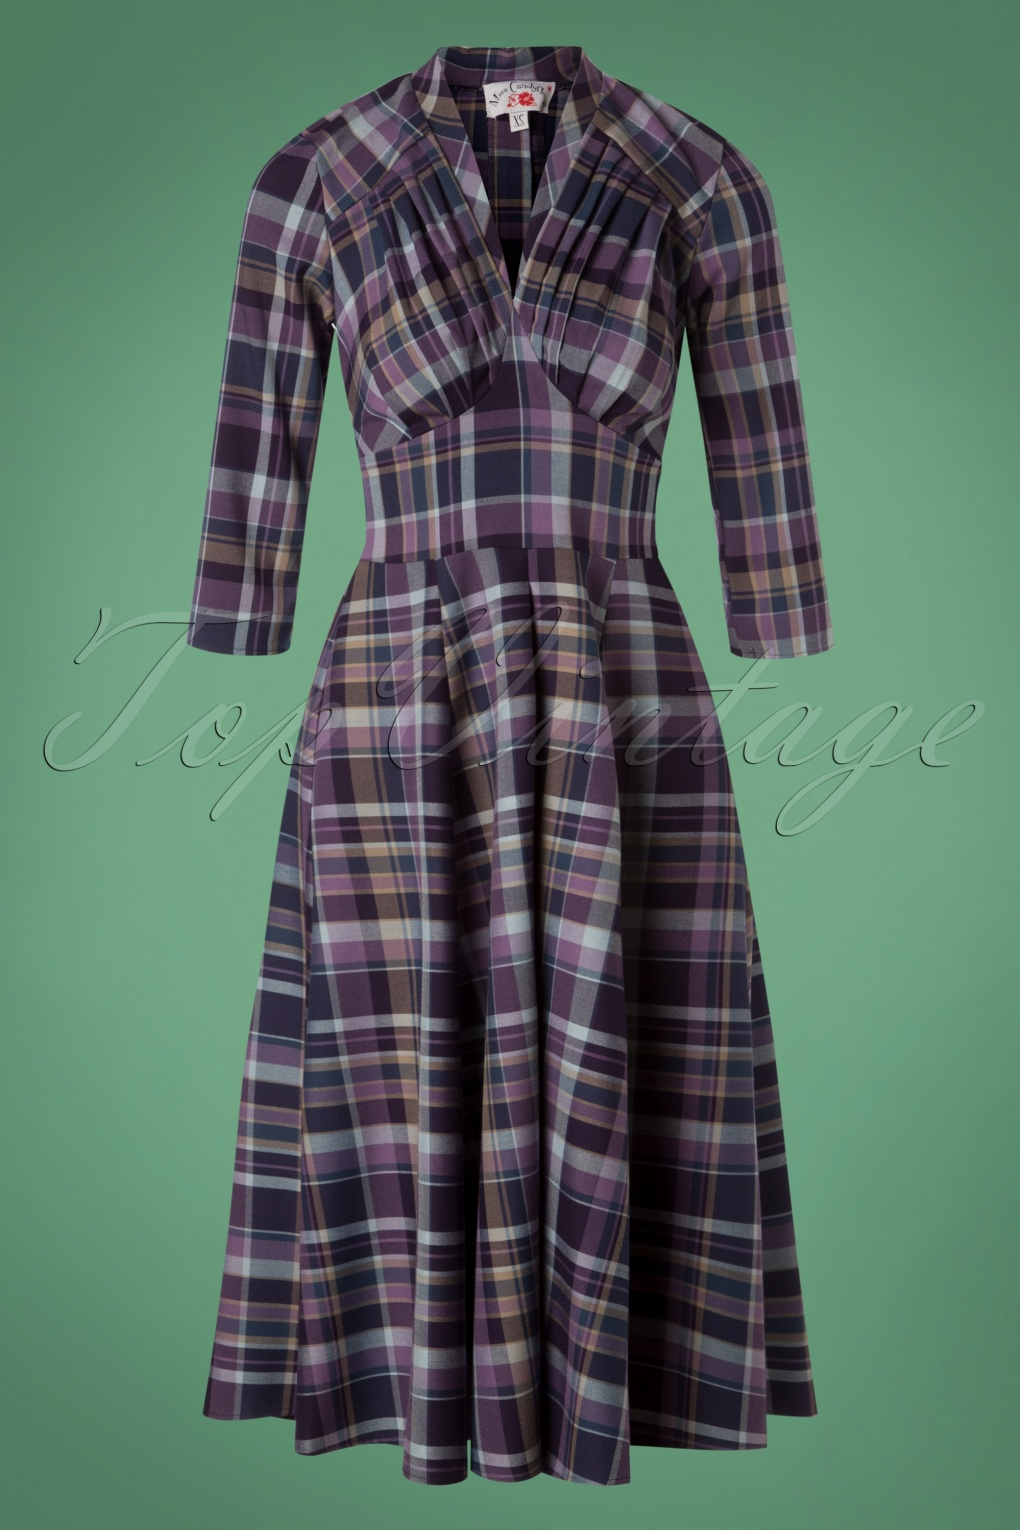 Pin Up Dresses | Pinup Clothing & Fashion TopVintage exclusive  50s Valeria Tartan Swing Dress in Purple £94.01 AT vintagedancer.com